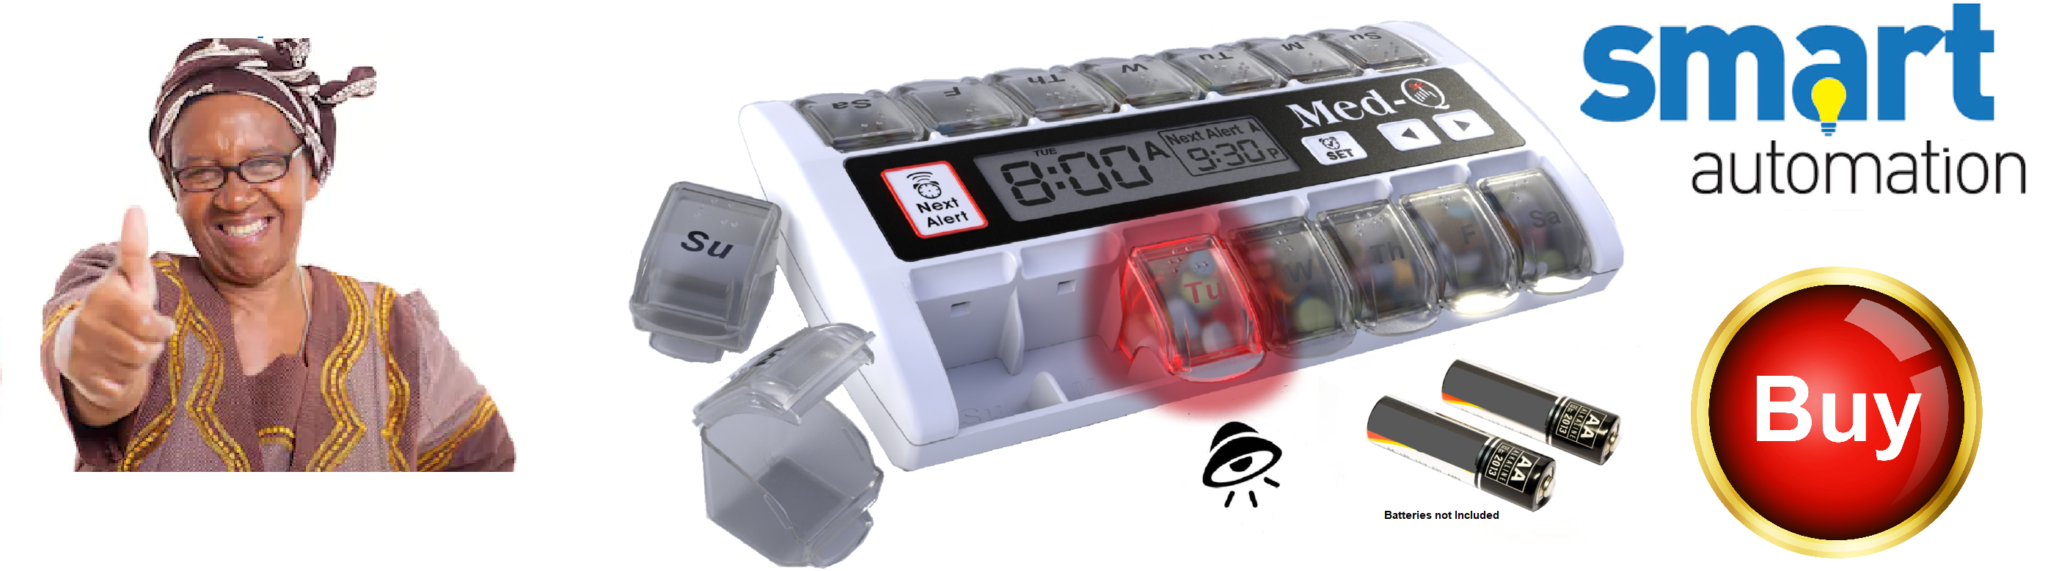 Med-Q pill dispenser for preventing forgetting and over dosing